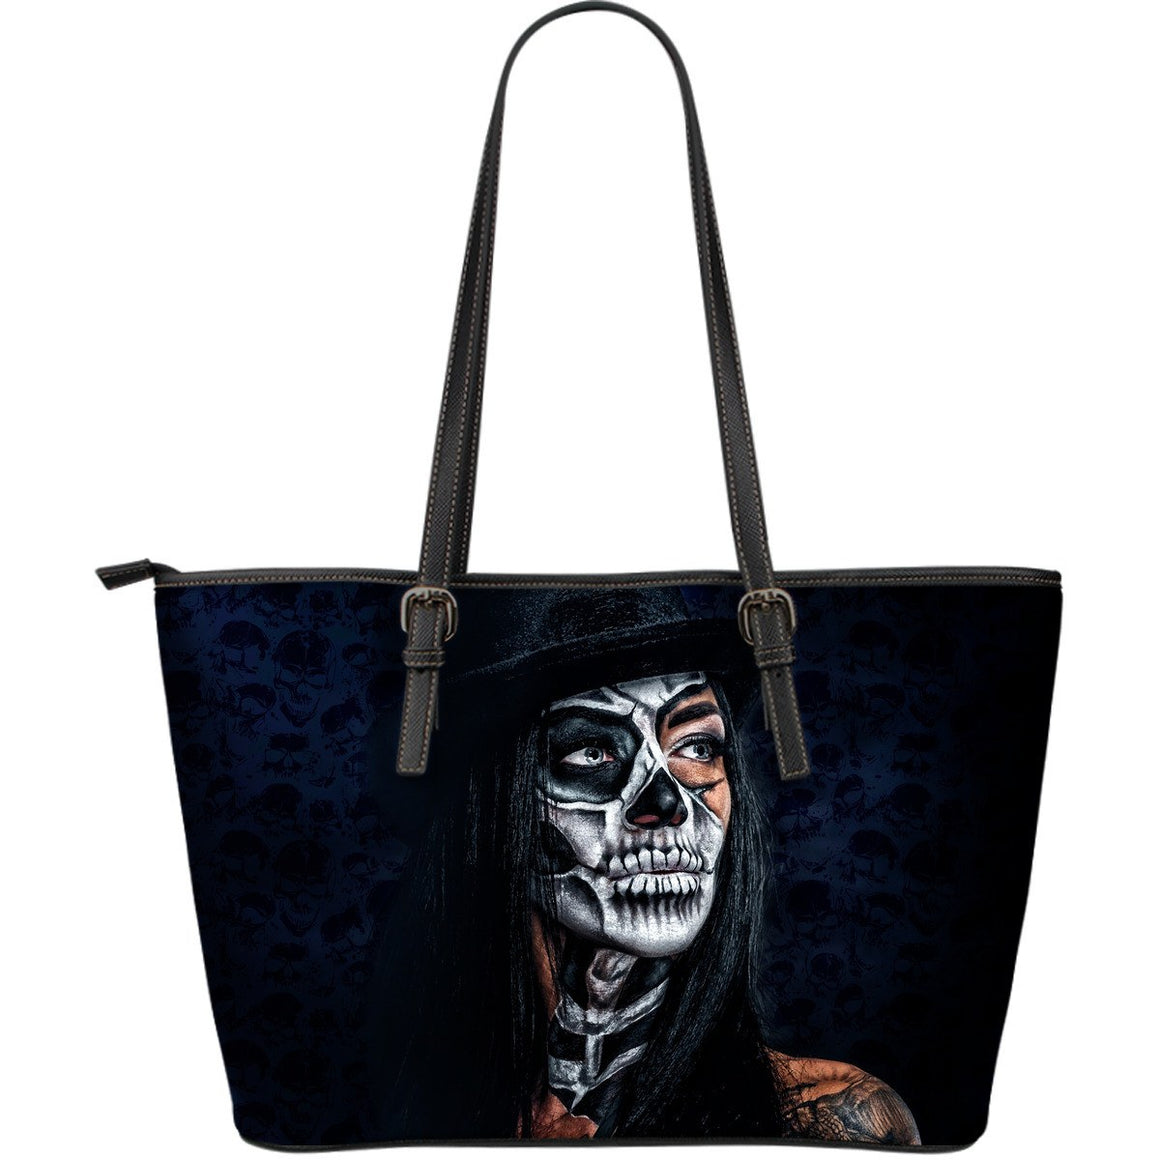 Large Leather Tote Bag - Lady Skull Leather Tote Bag